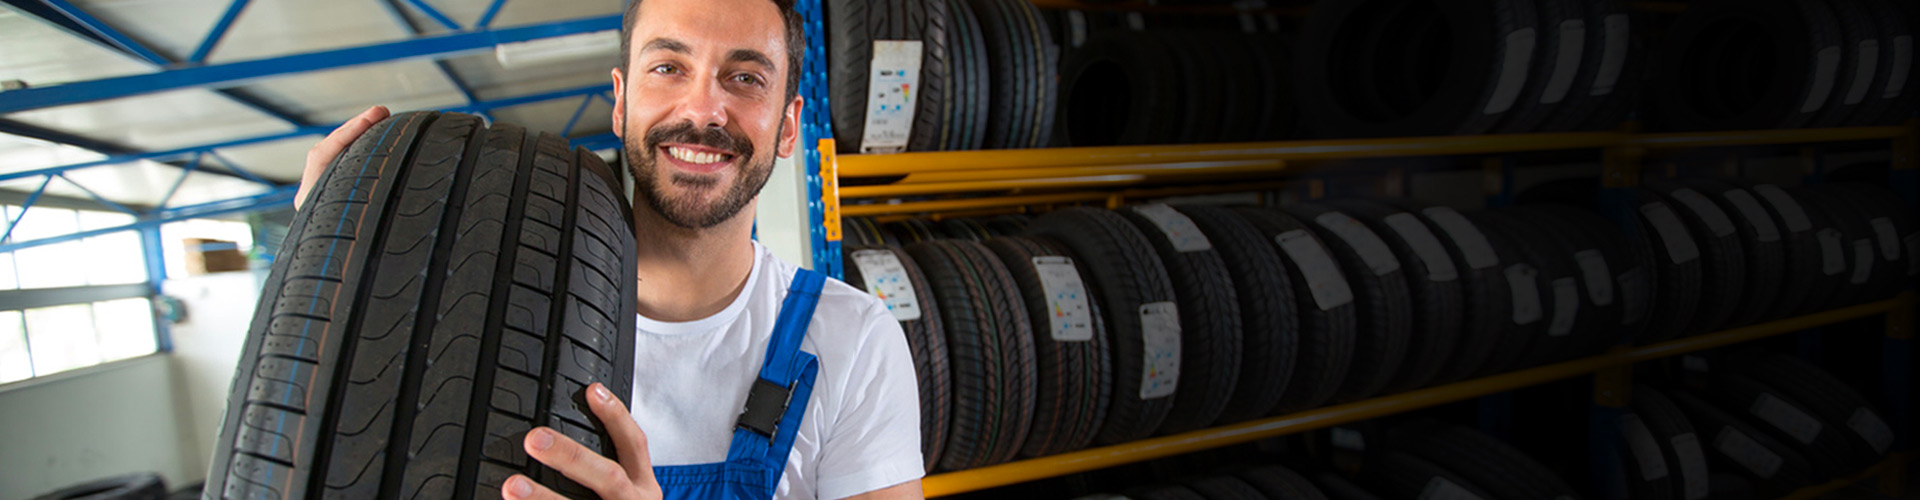 Smiling Mechanic Carrying Tire in Tire Store